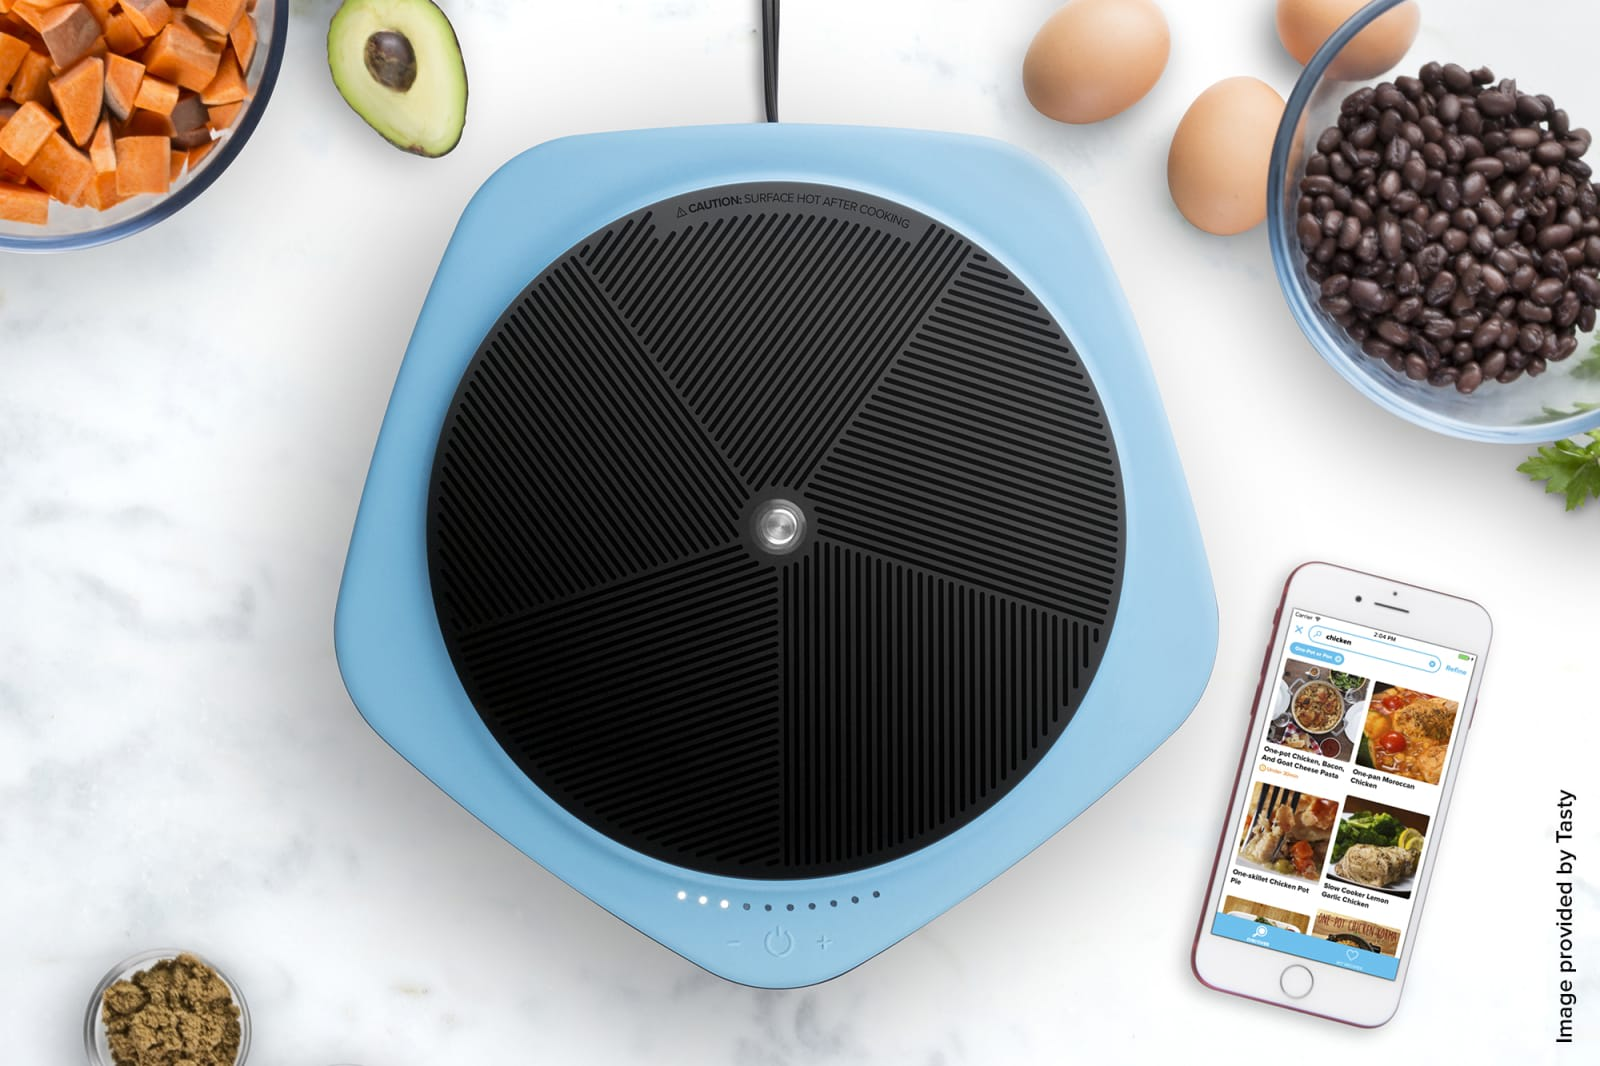 Viral cooking videos control buzzfeeds 150 bluetooth hot plate buzzfeed tasty forumfinder Gallery